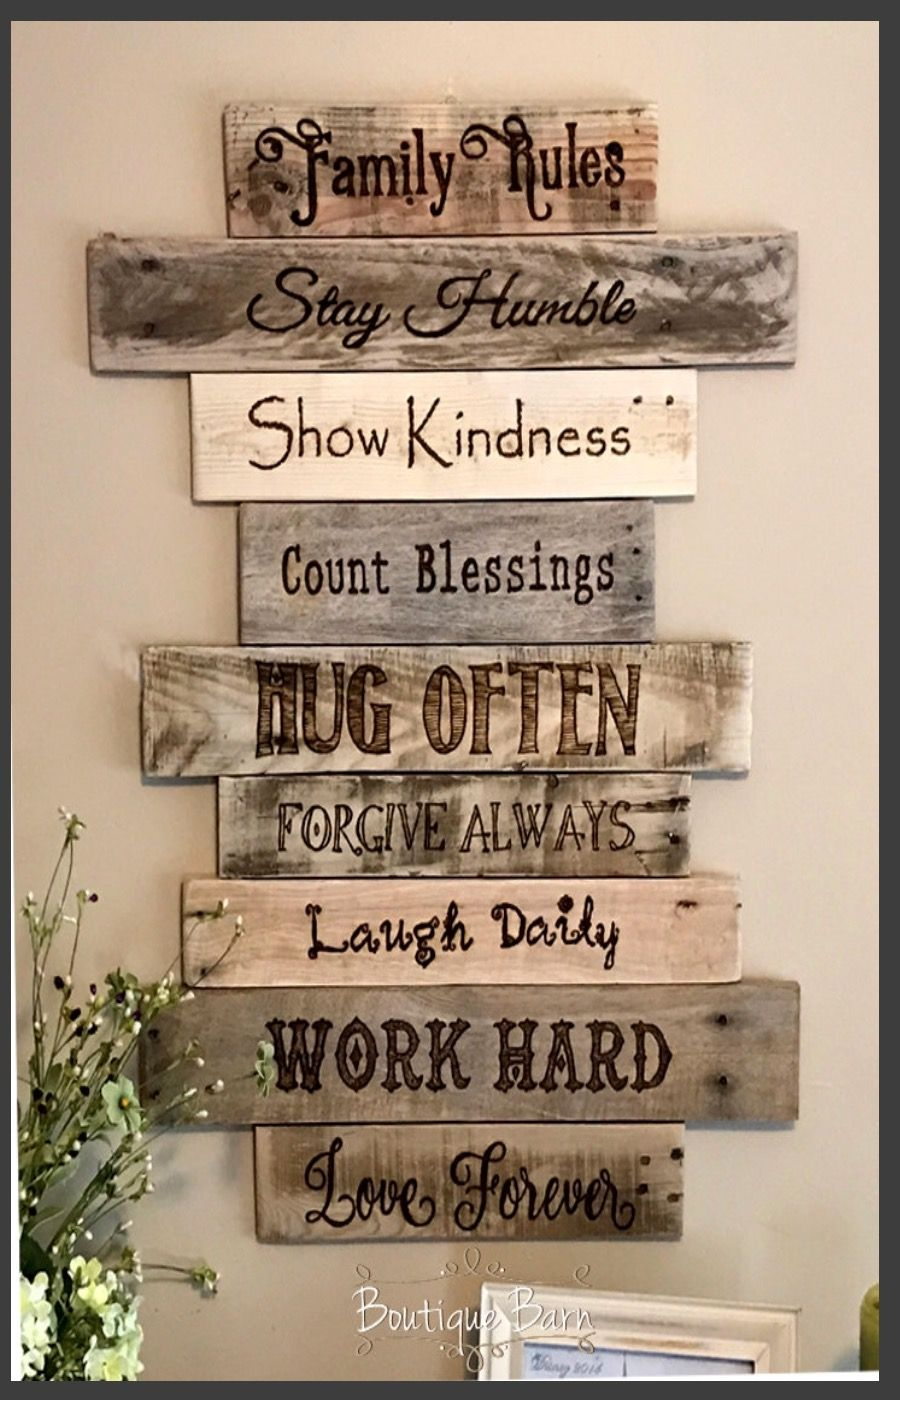 Family Rules Sign Wood Wall Decor Farmhouse Country Home Handmade Rustic Reclaimed Gift Housewarming Ad